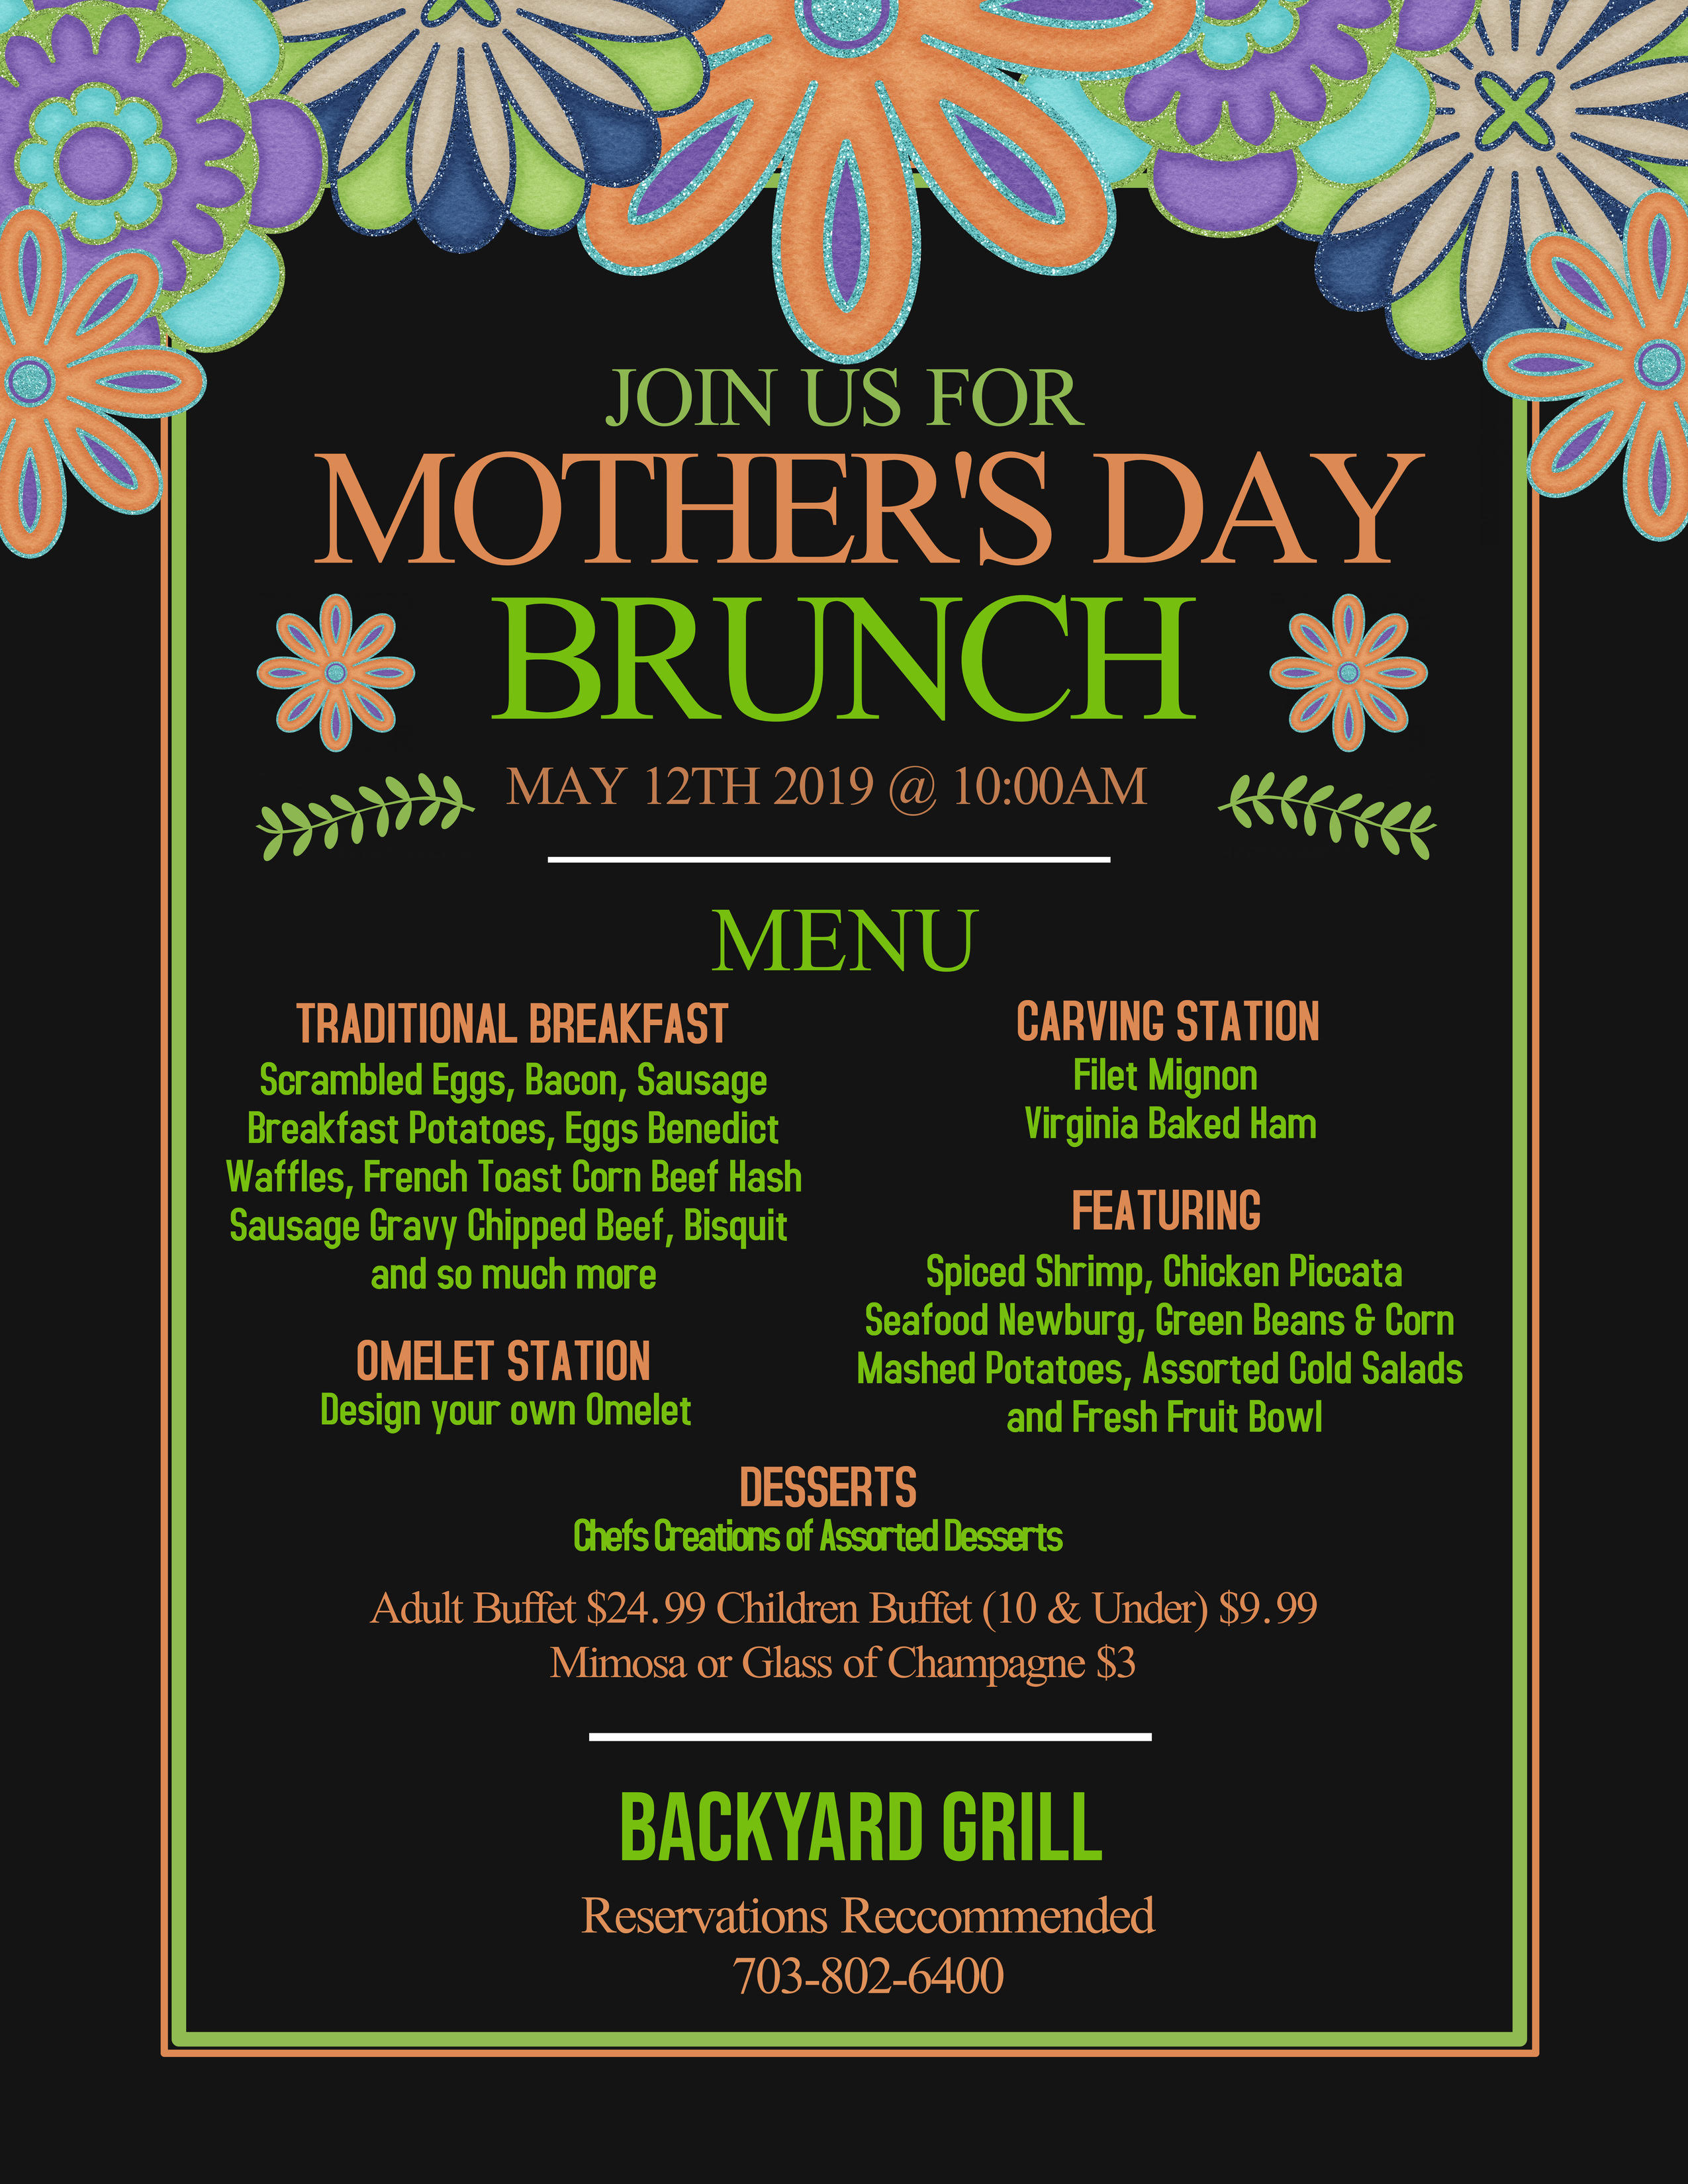 Mother's Day Brunch - Chantilly